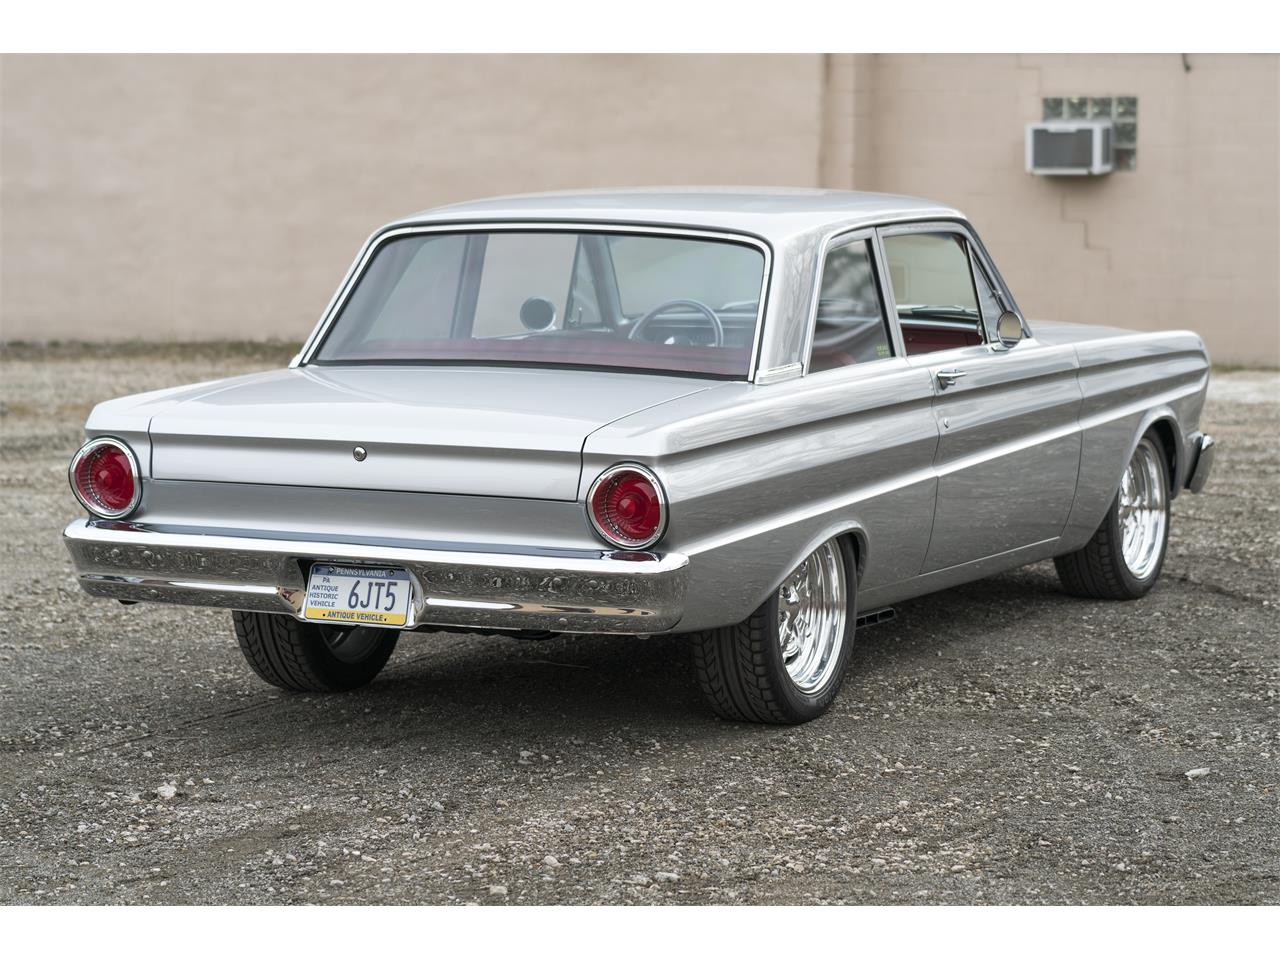 Large Picture of 1964 Ford Falcon - $54,000.00 - PZS8